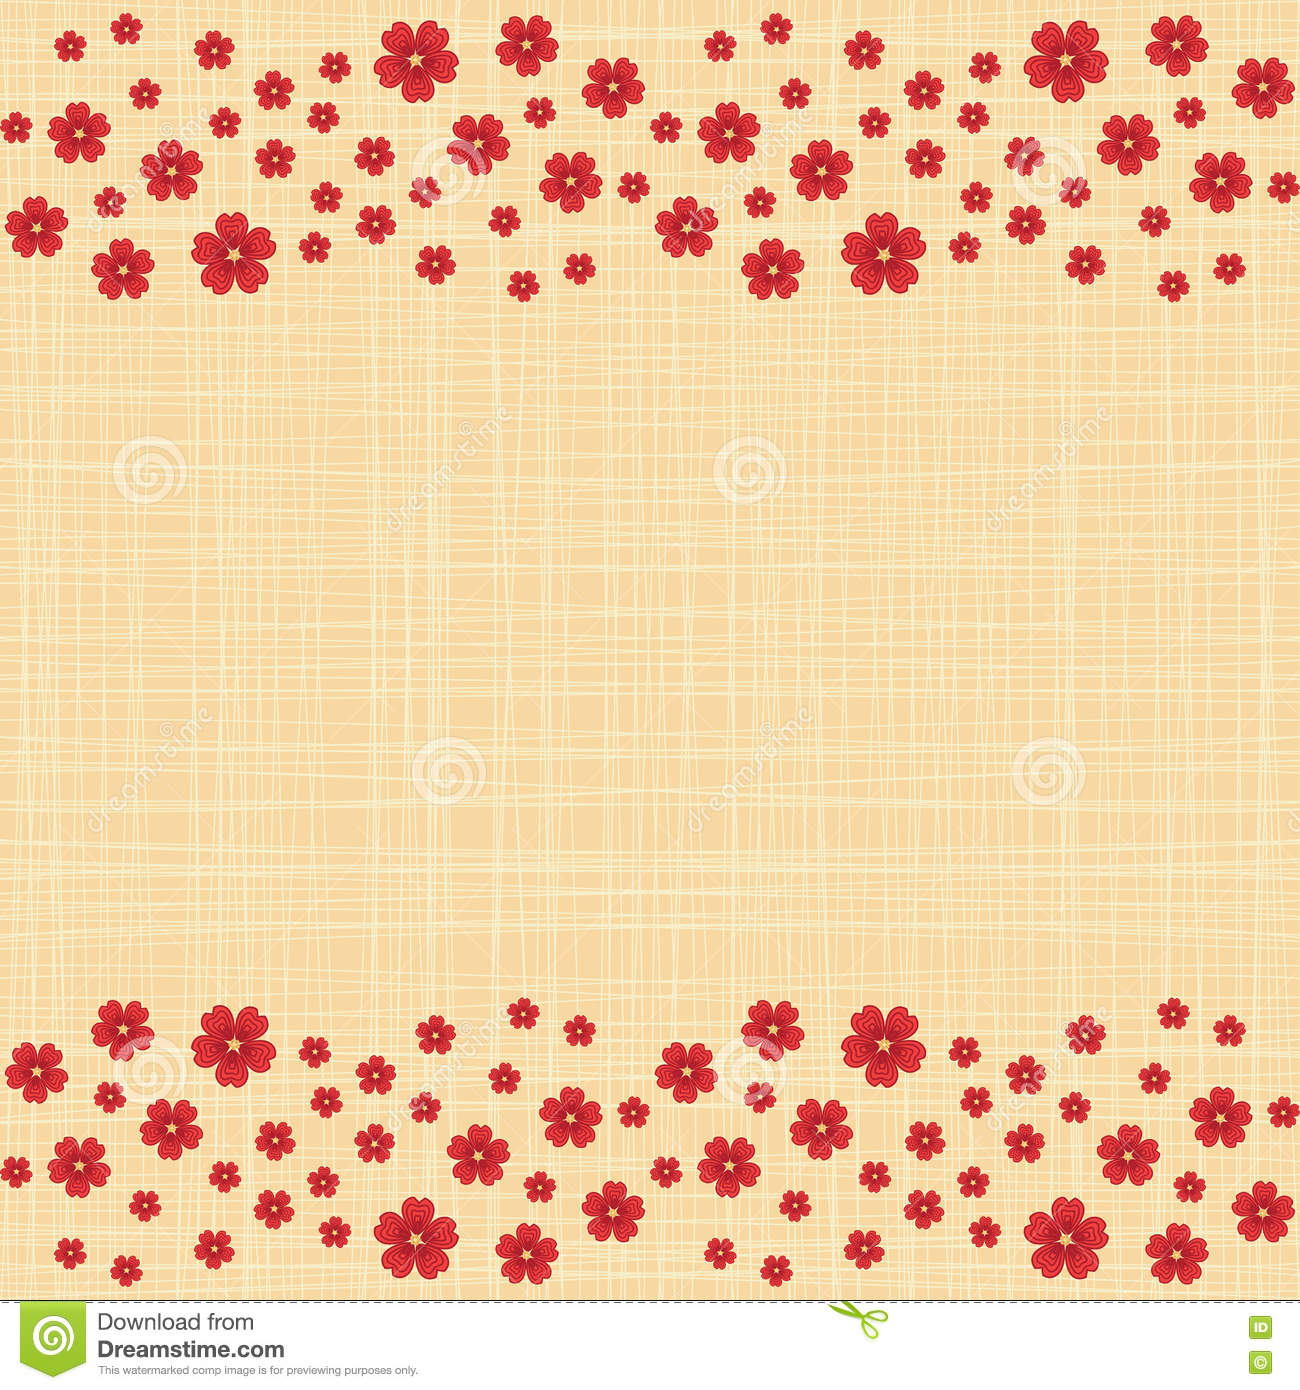 a61d29fdbb3 Cute Funny Background Border Frame With Flowers Stock Vector ...